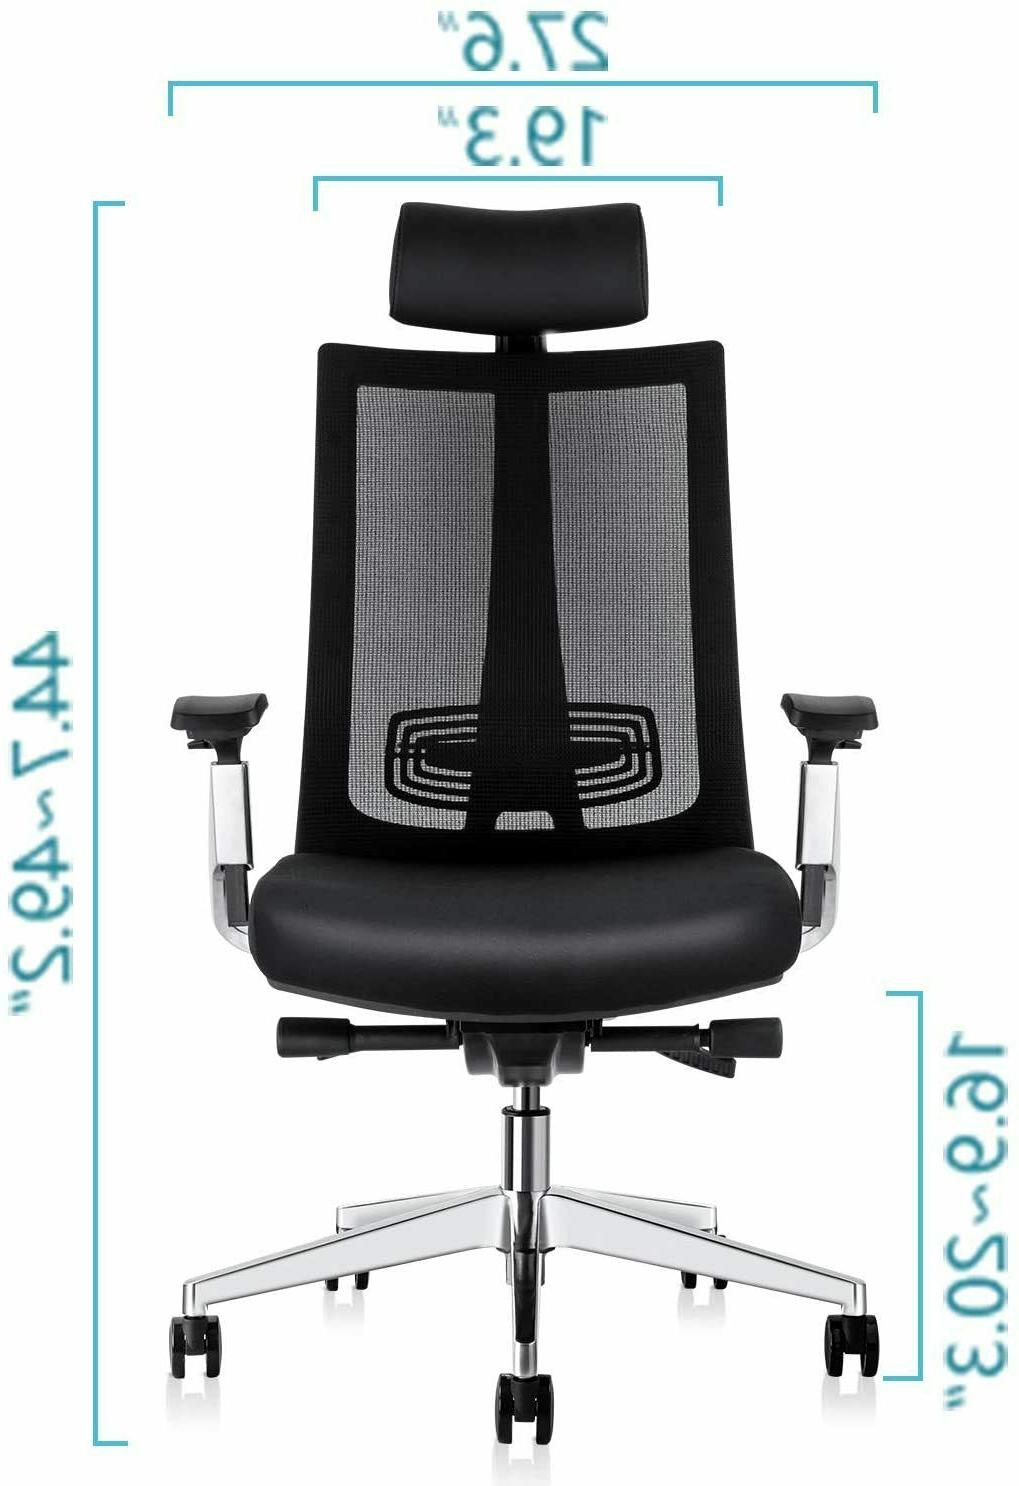 Ergonomic Adjustable Chair, with Lumbar Support